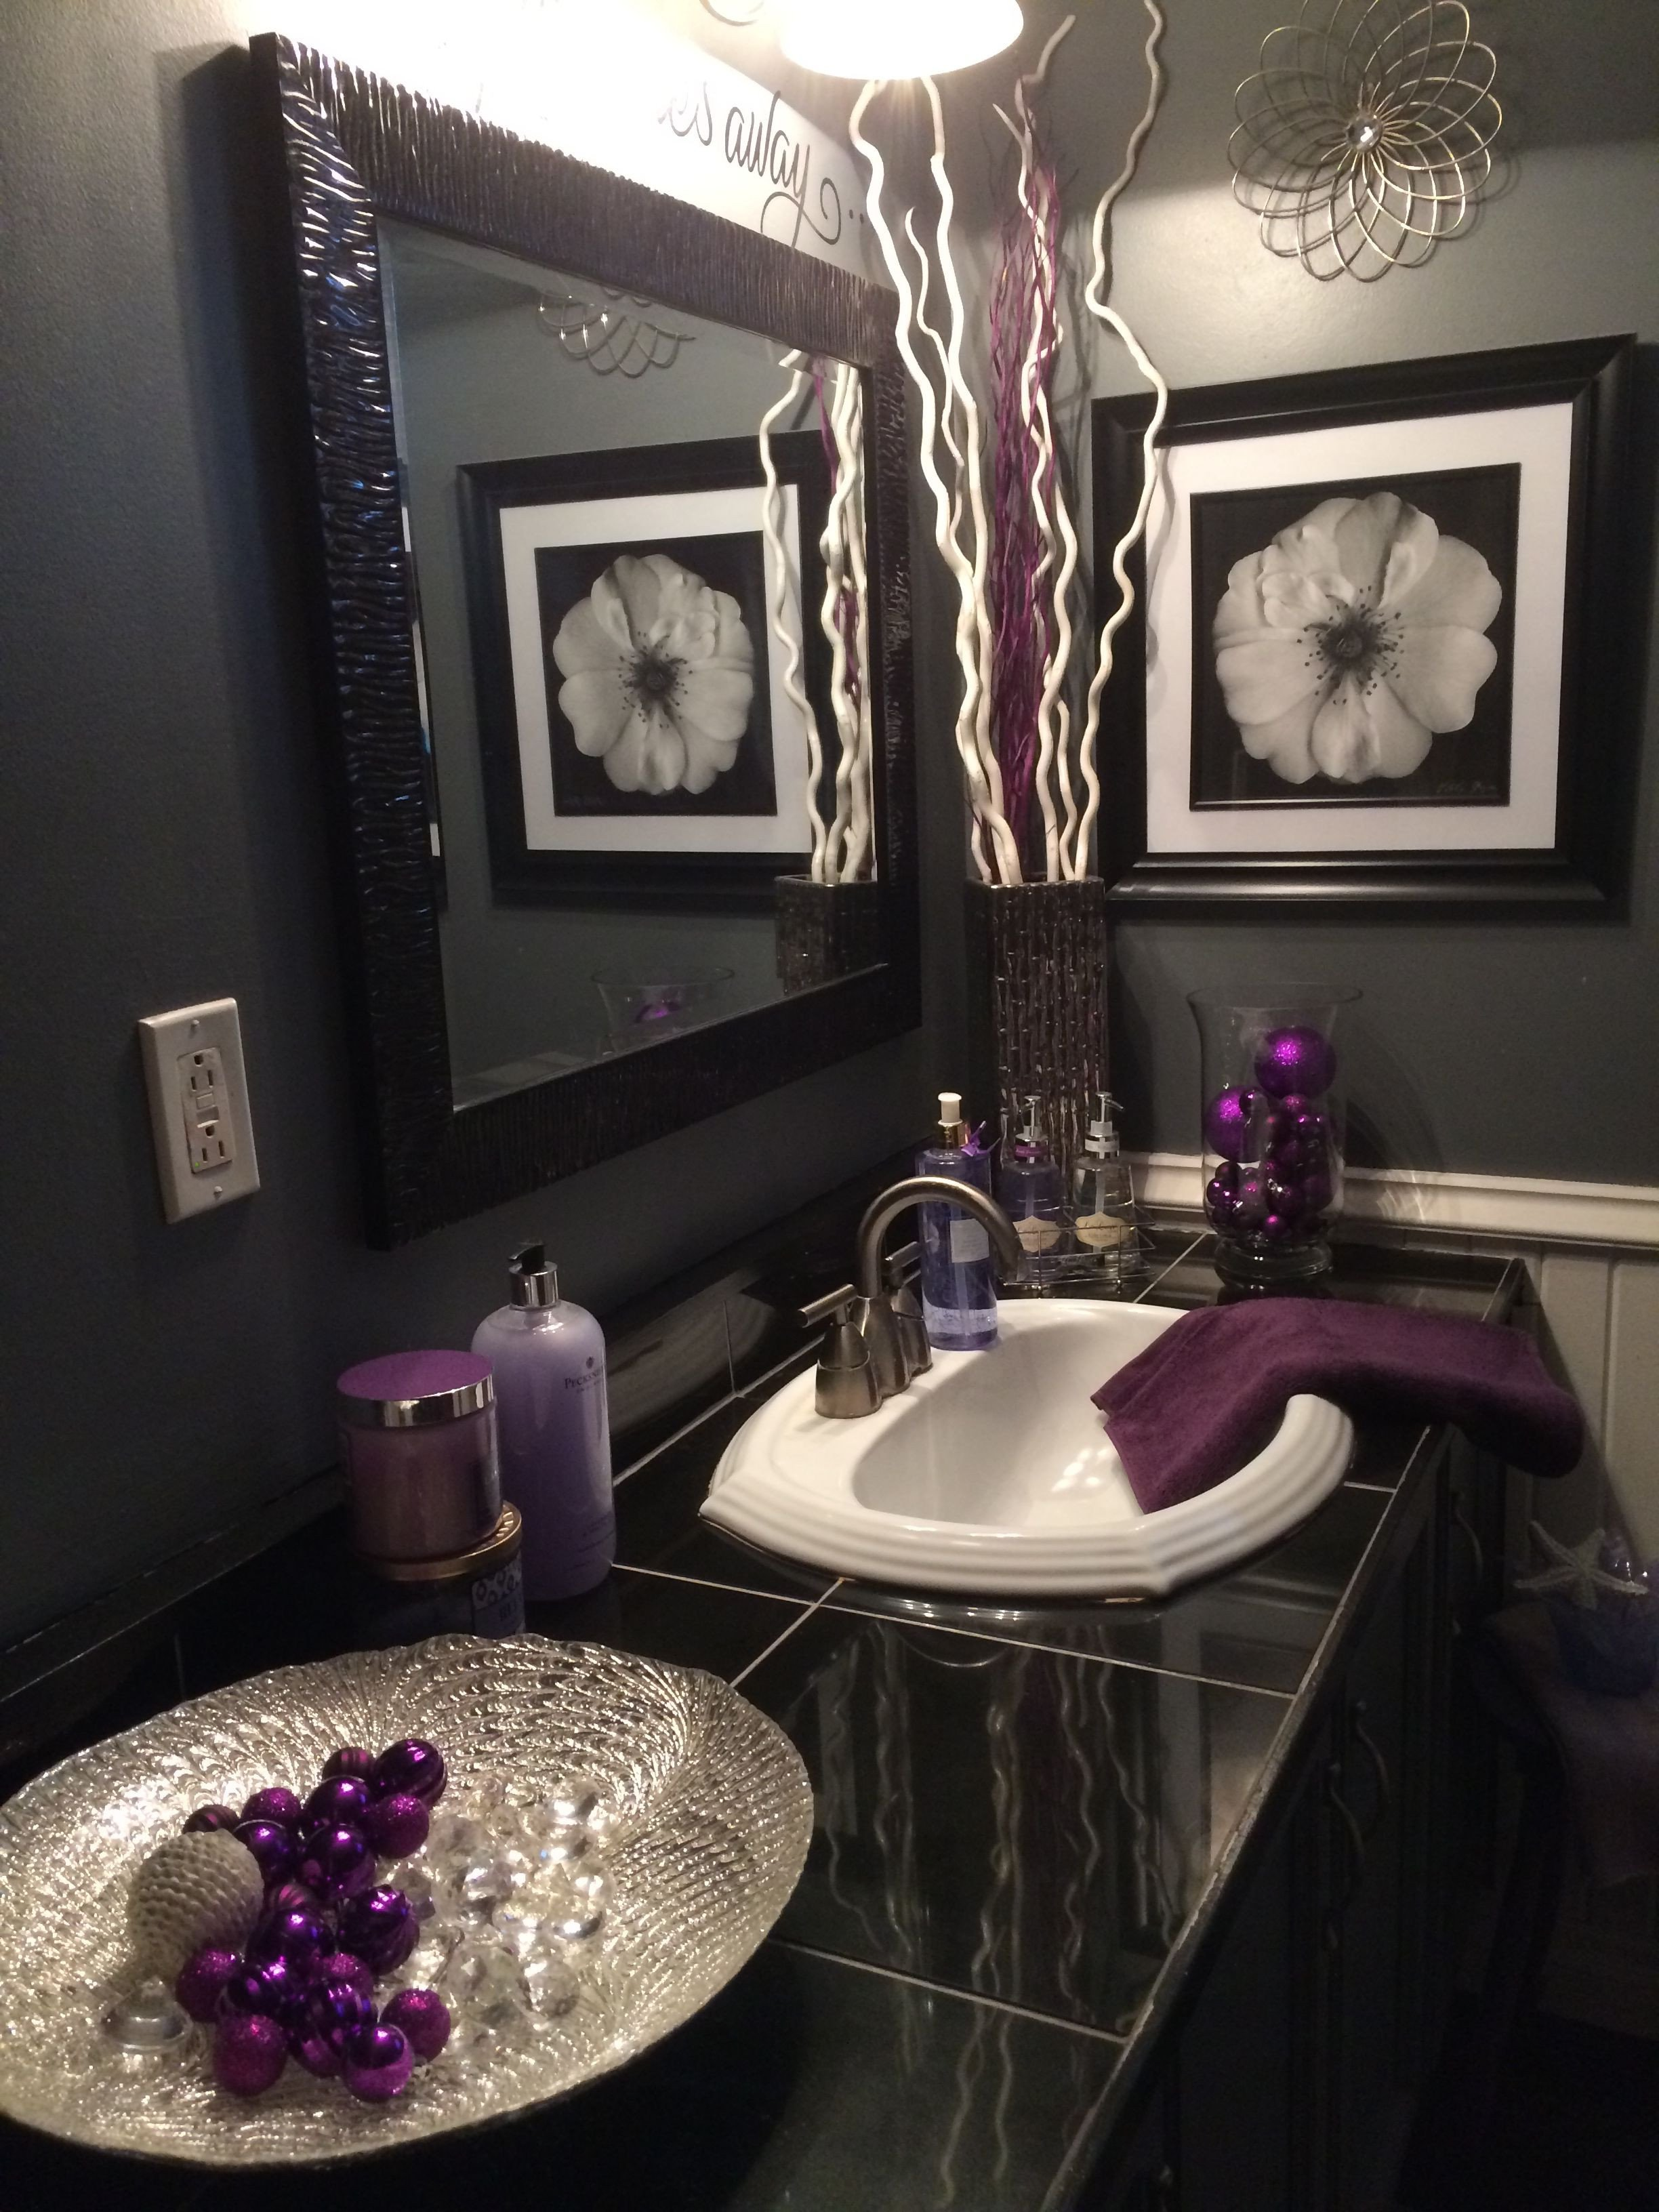 Black and Gray Bathroom Decor New Black and Grey Bathroom with Lavender Accents Home Sweet Home